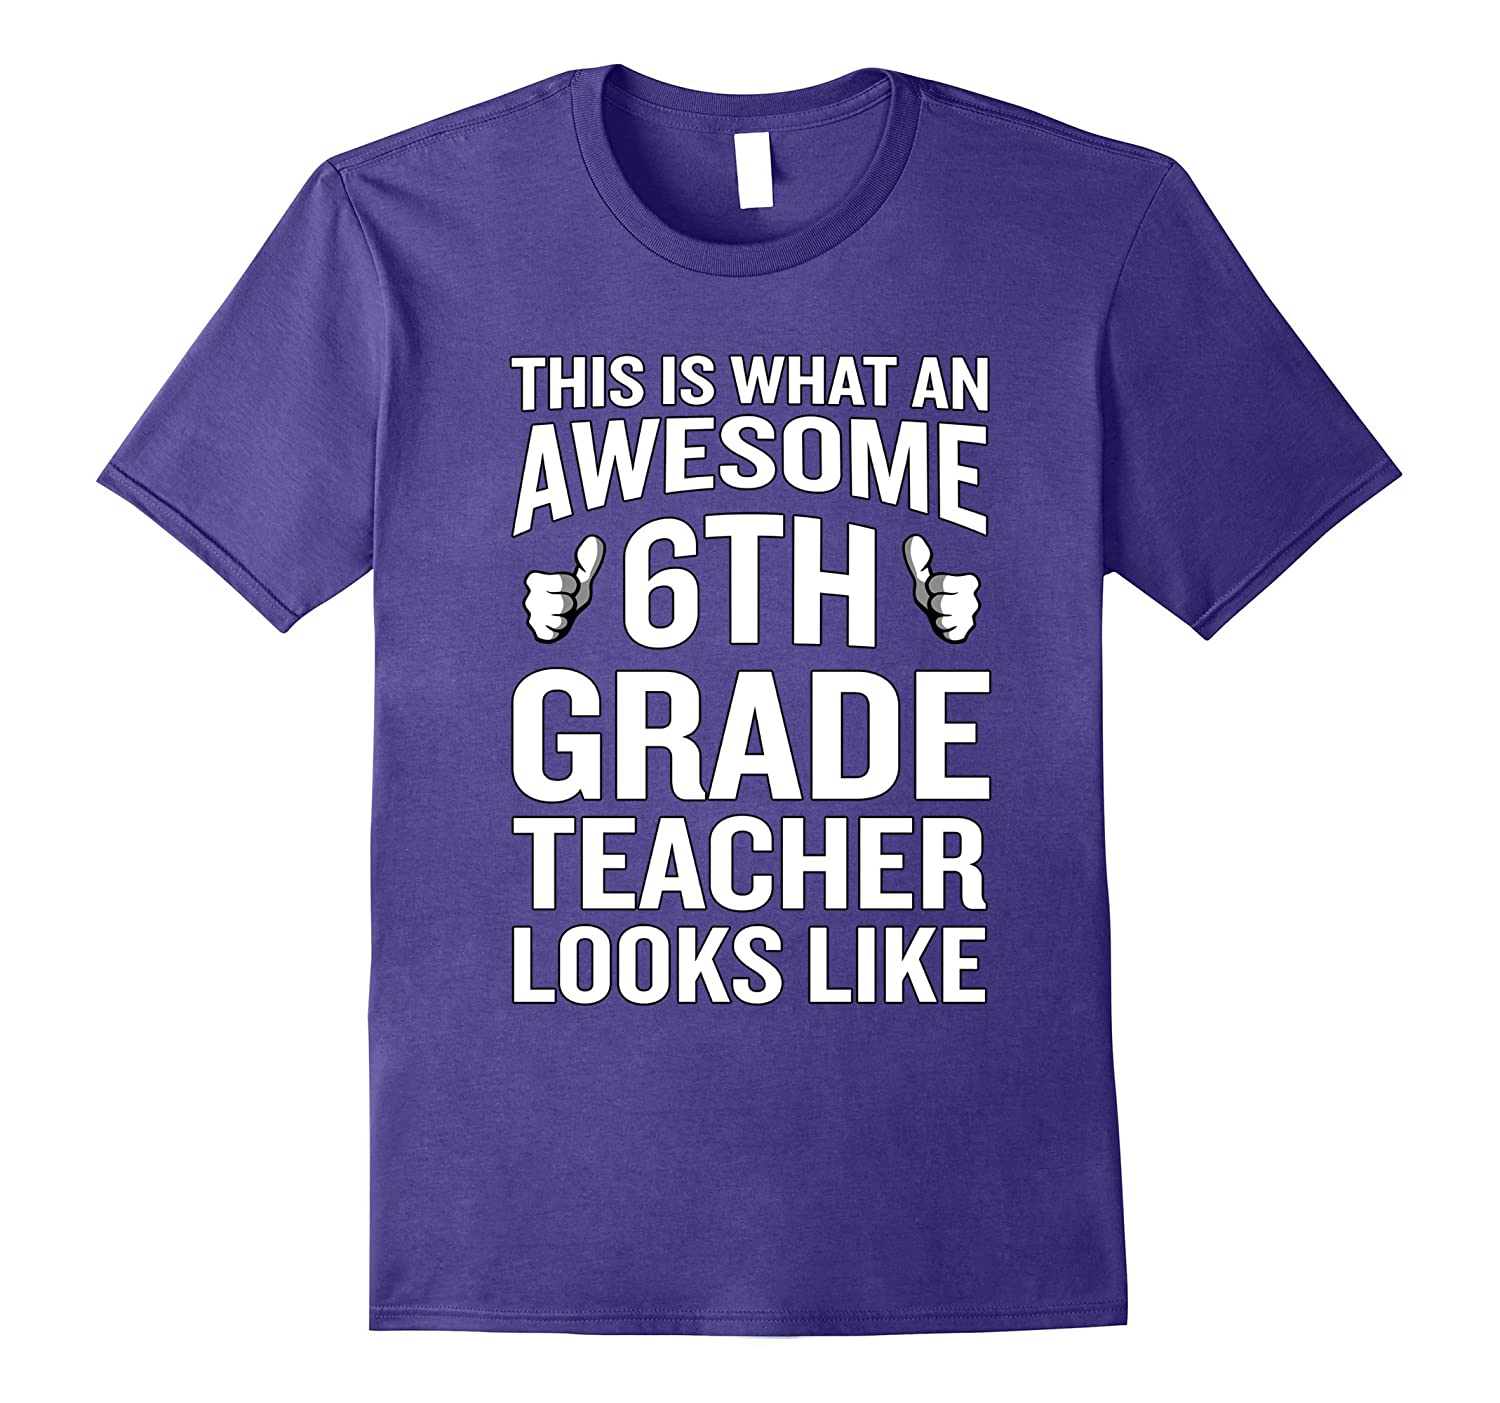 Awesome 6th Grade Teacher Looks Like T-Shirt Funny Gag Gift-BN